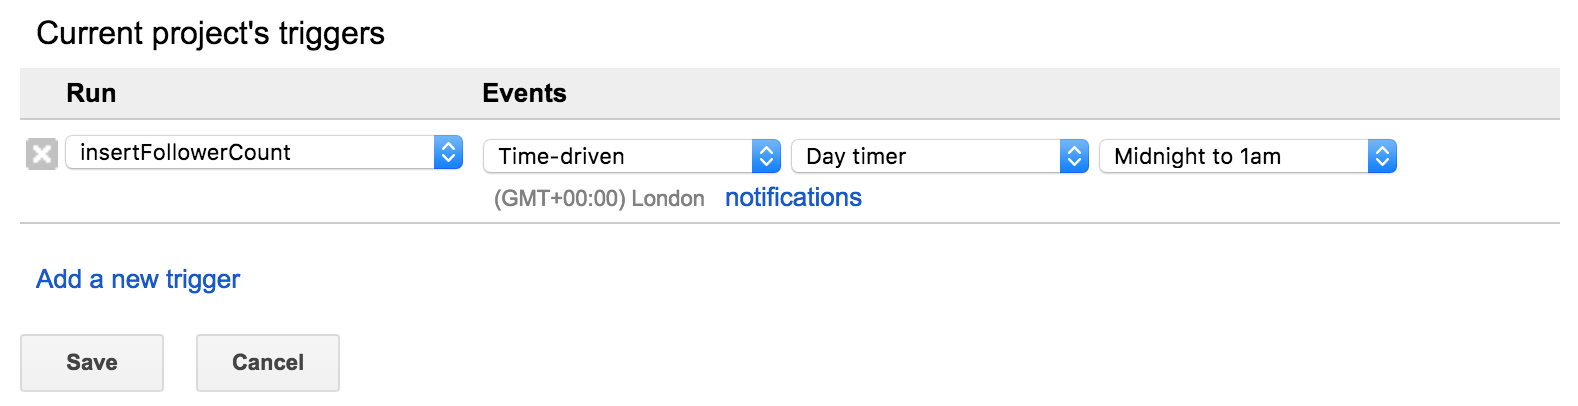 How to track your Instagram followers over time with Google